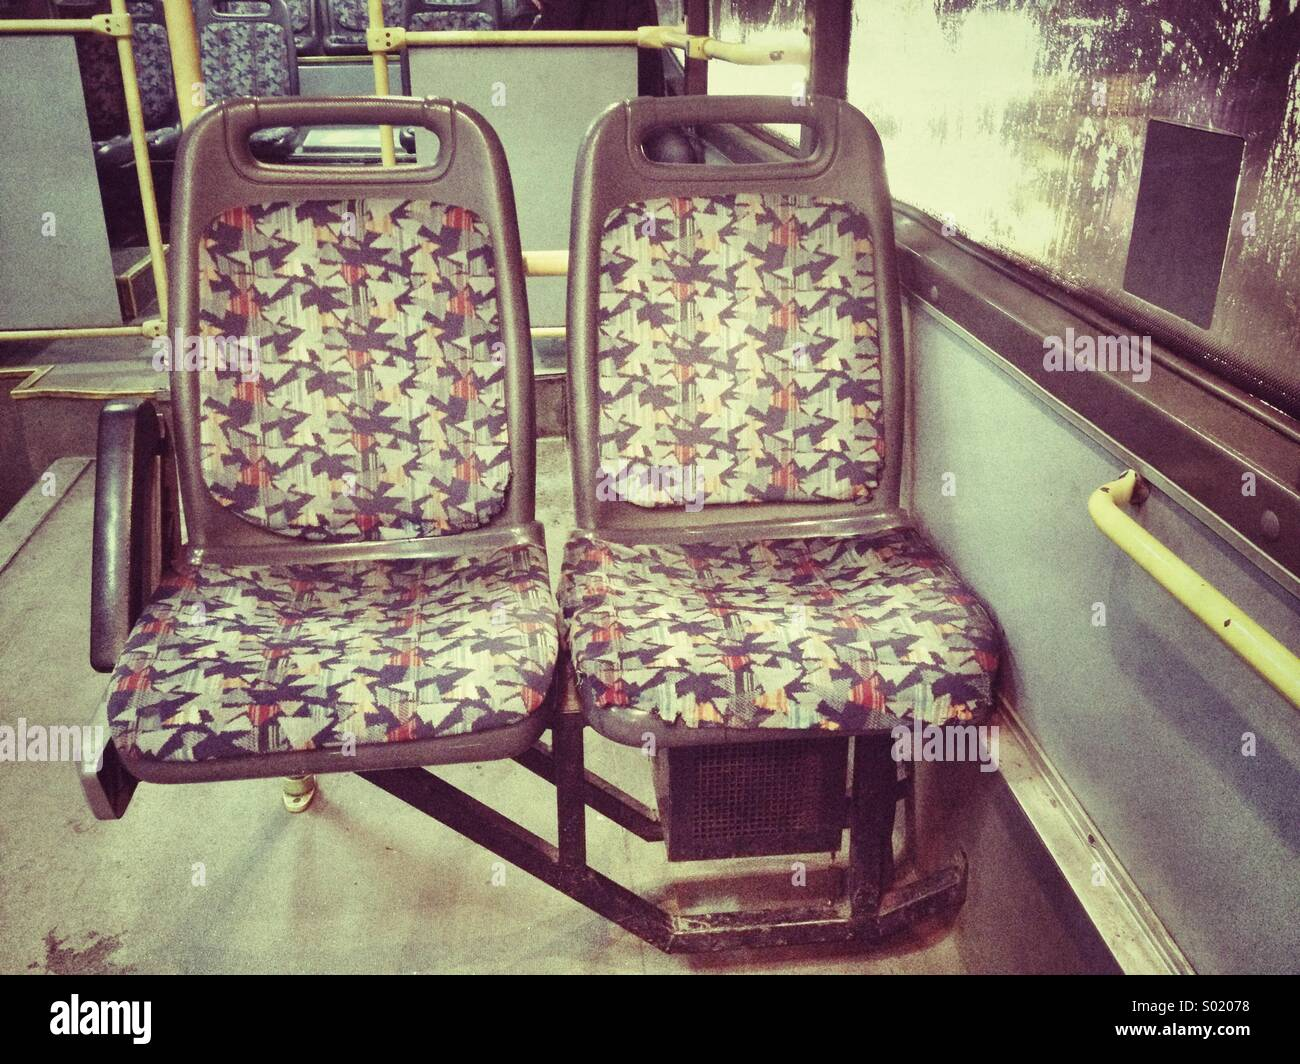 Bus chairs - Stock Image